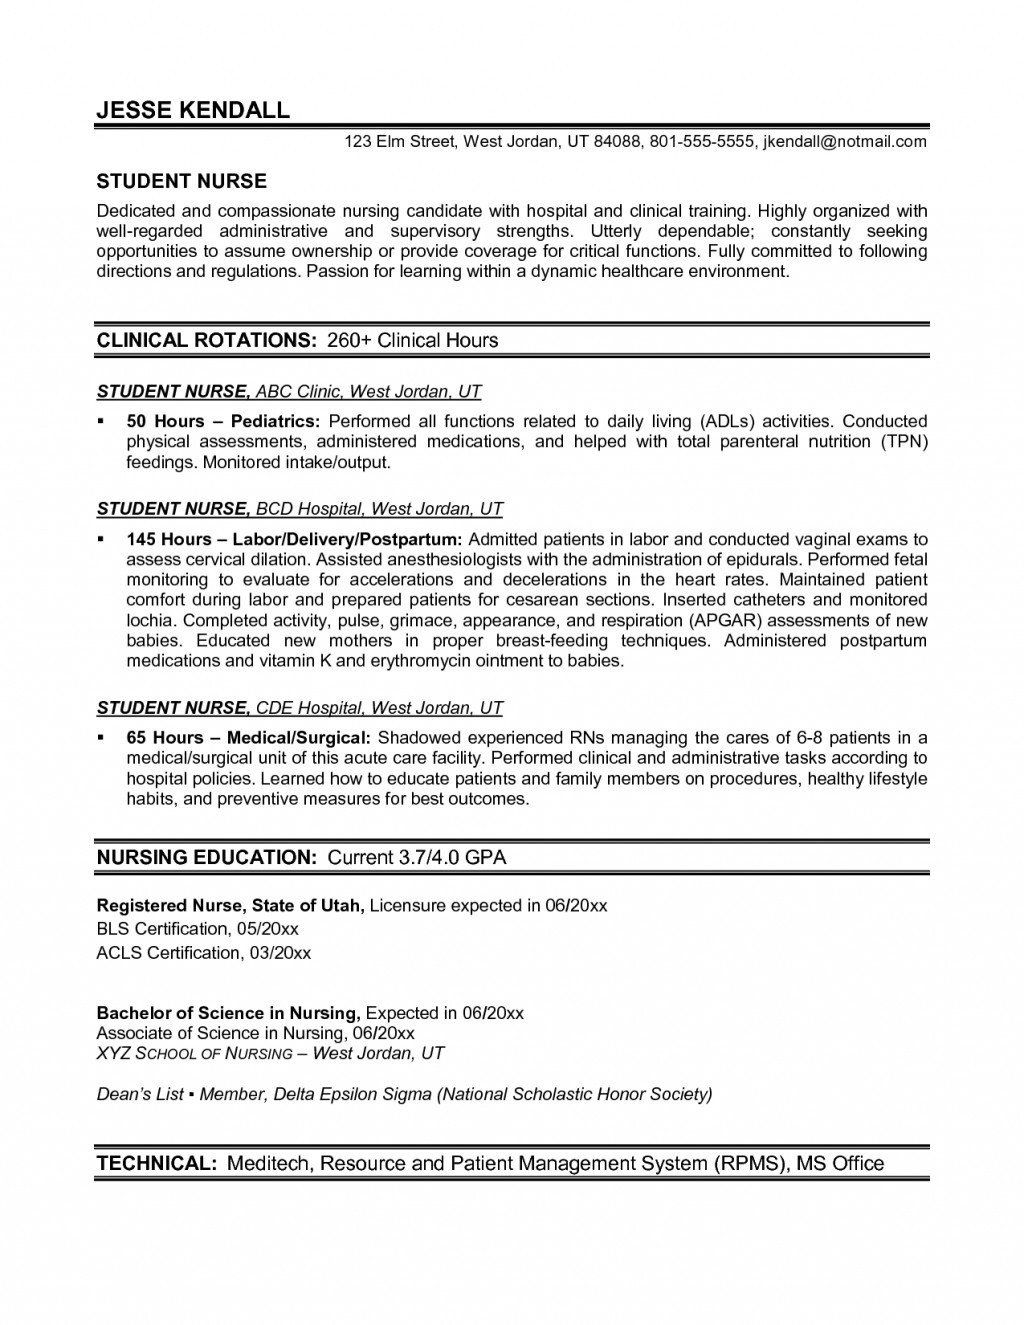 32 Lovely New Grad Rn Resume in 2020 Student nurse